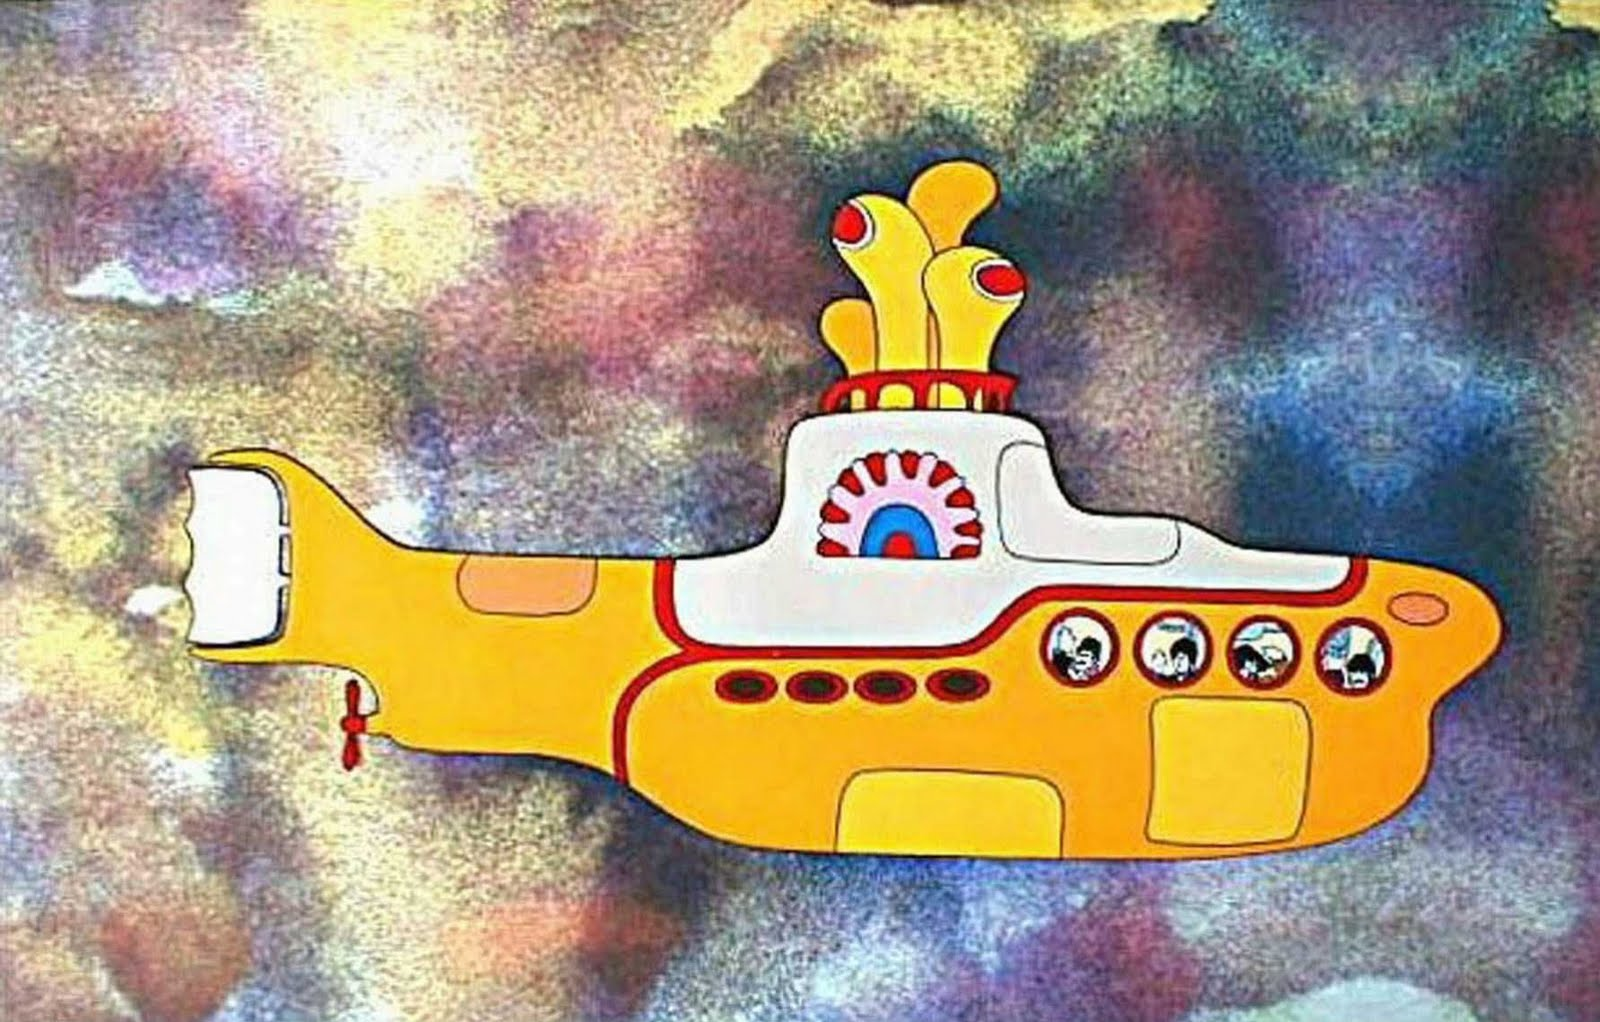 Image For > Yellow Submarine Movie Wallpapers